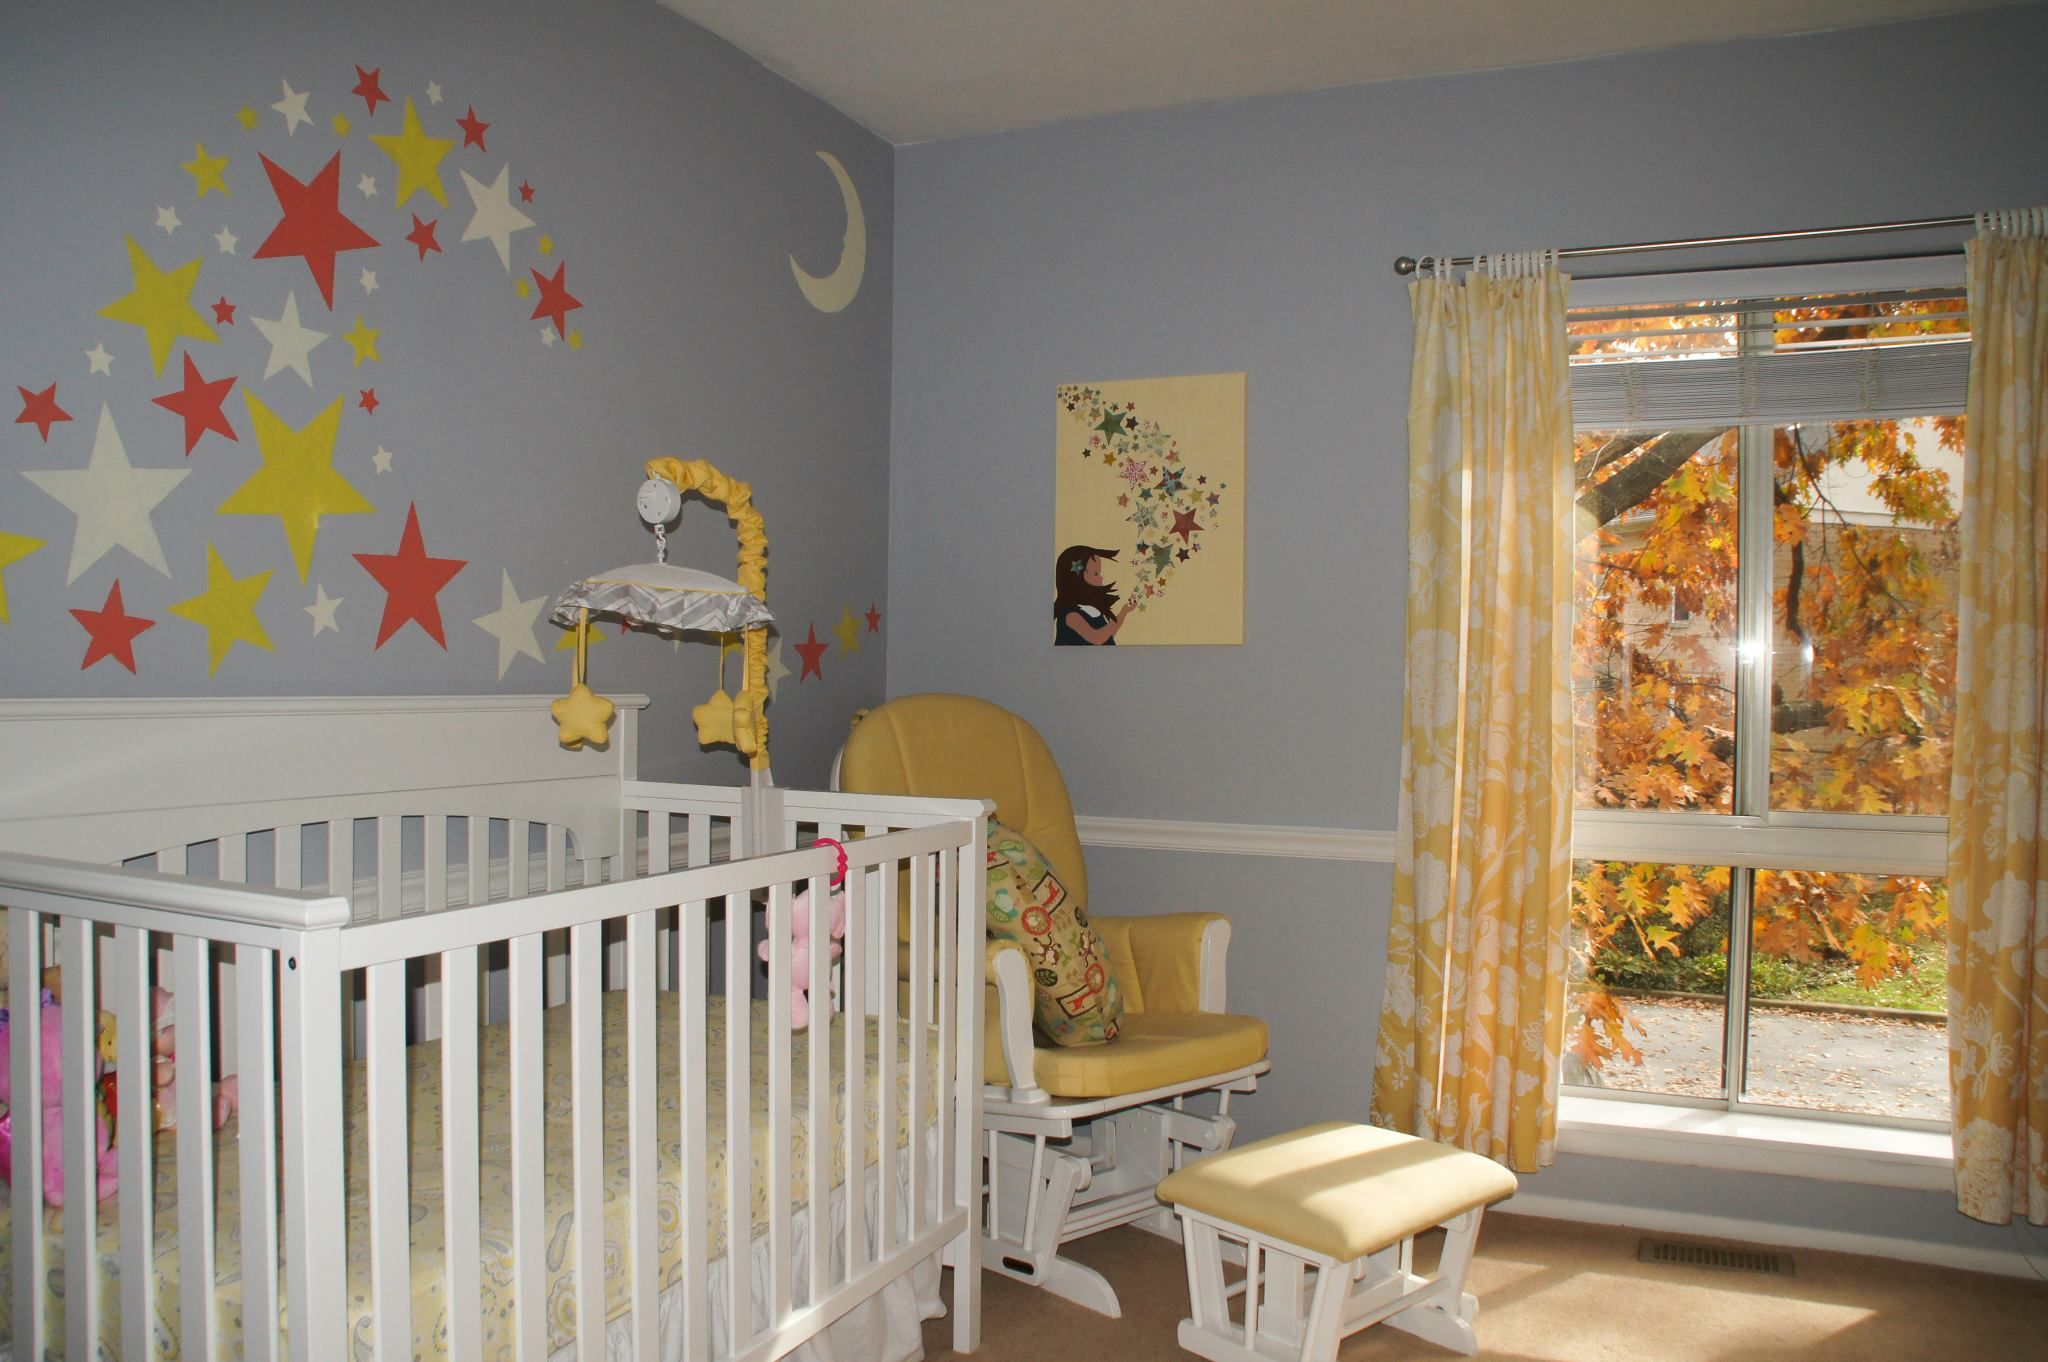 Our daughter's nursery is finally finished!  Gray, yellow, and white color scheme. We used stars as our general theme.